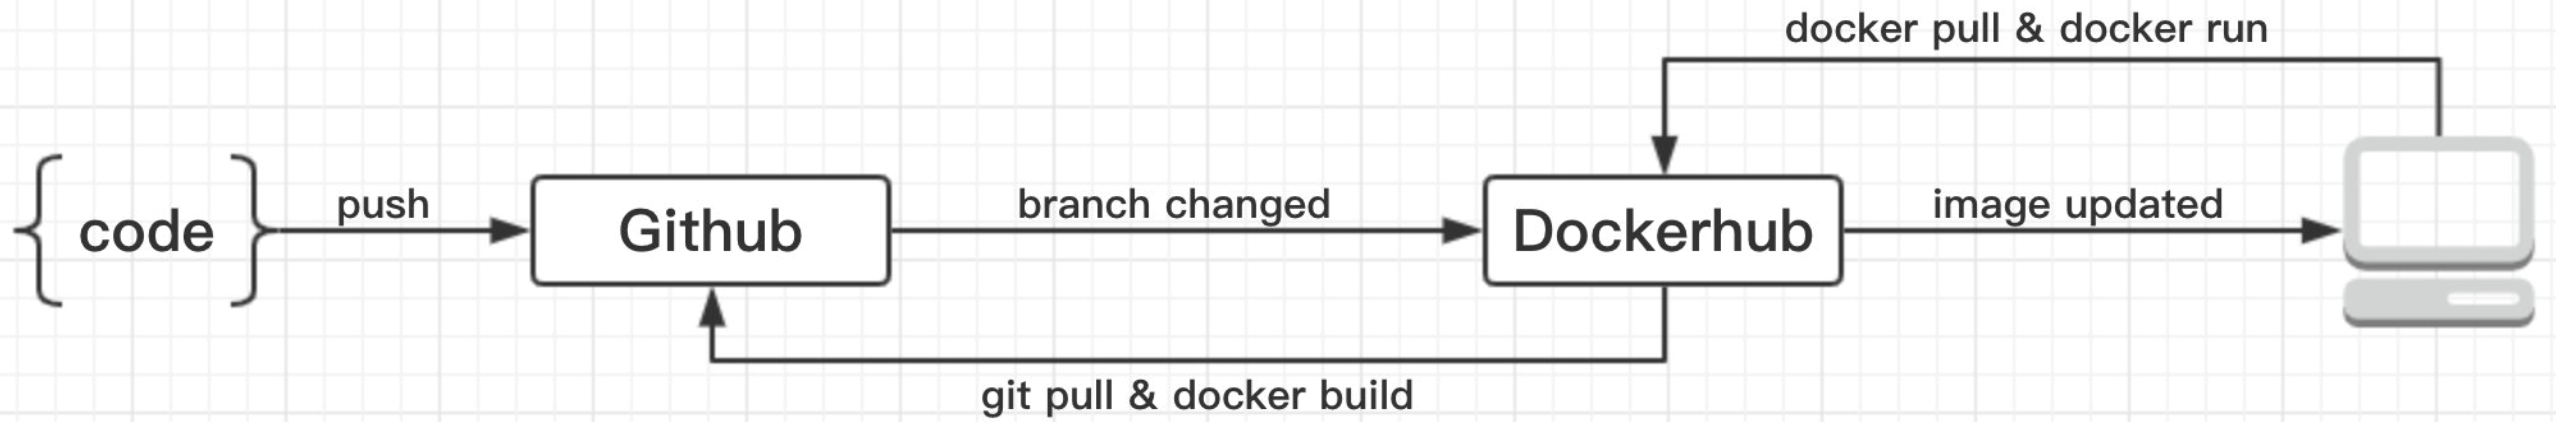 Continuous Deploy With Dockerhub